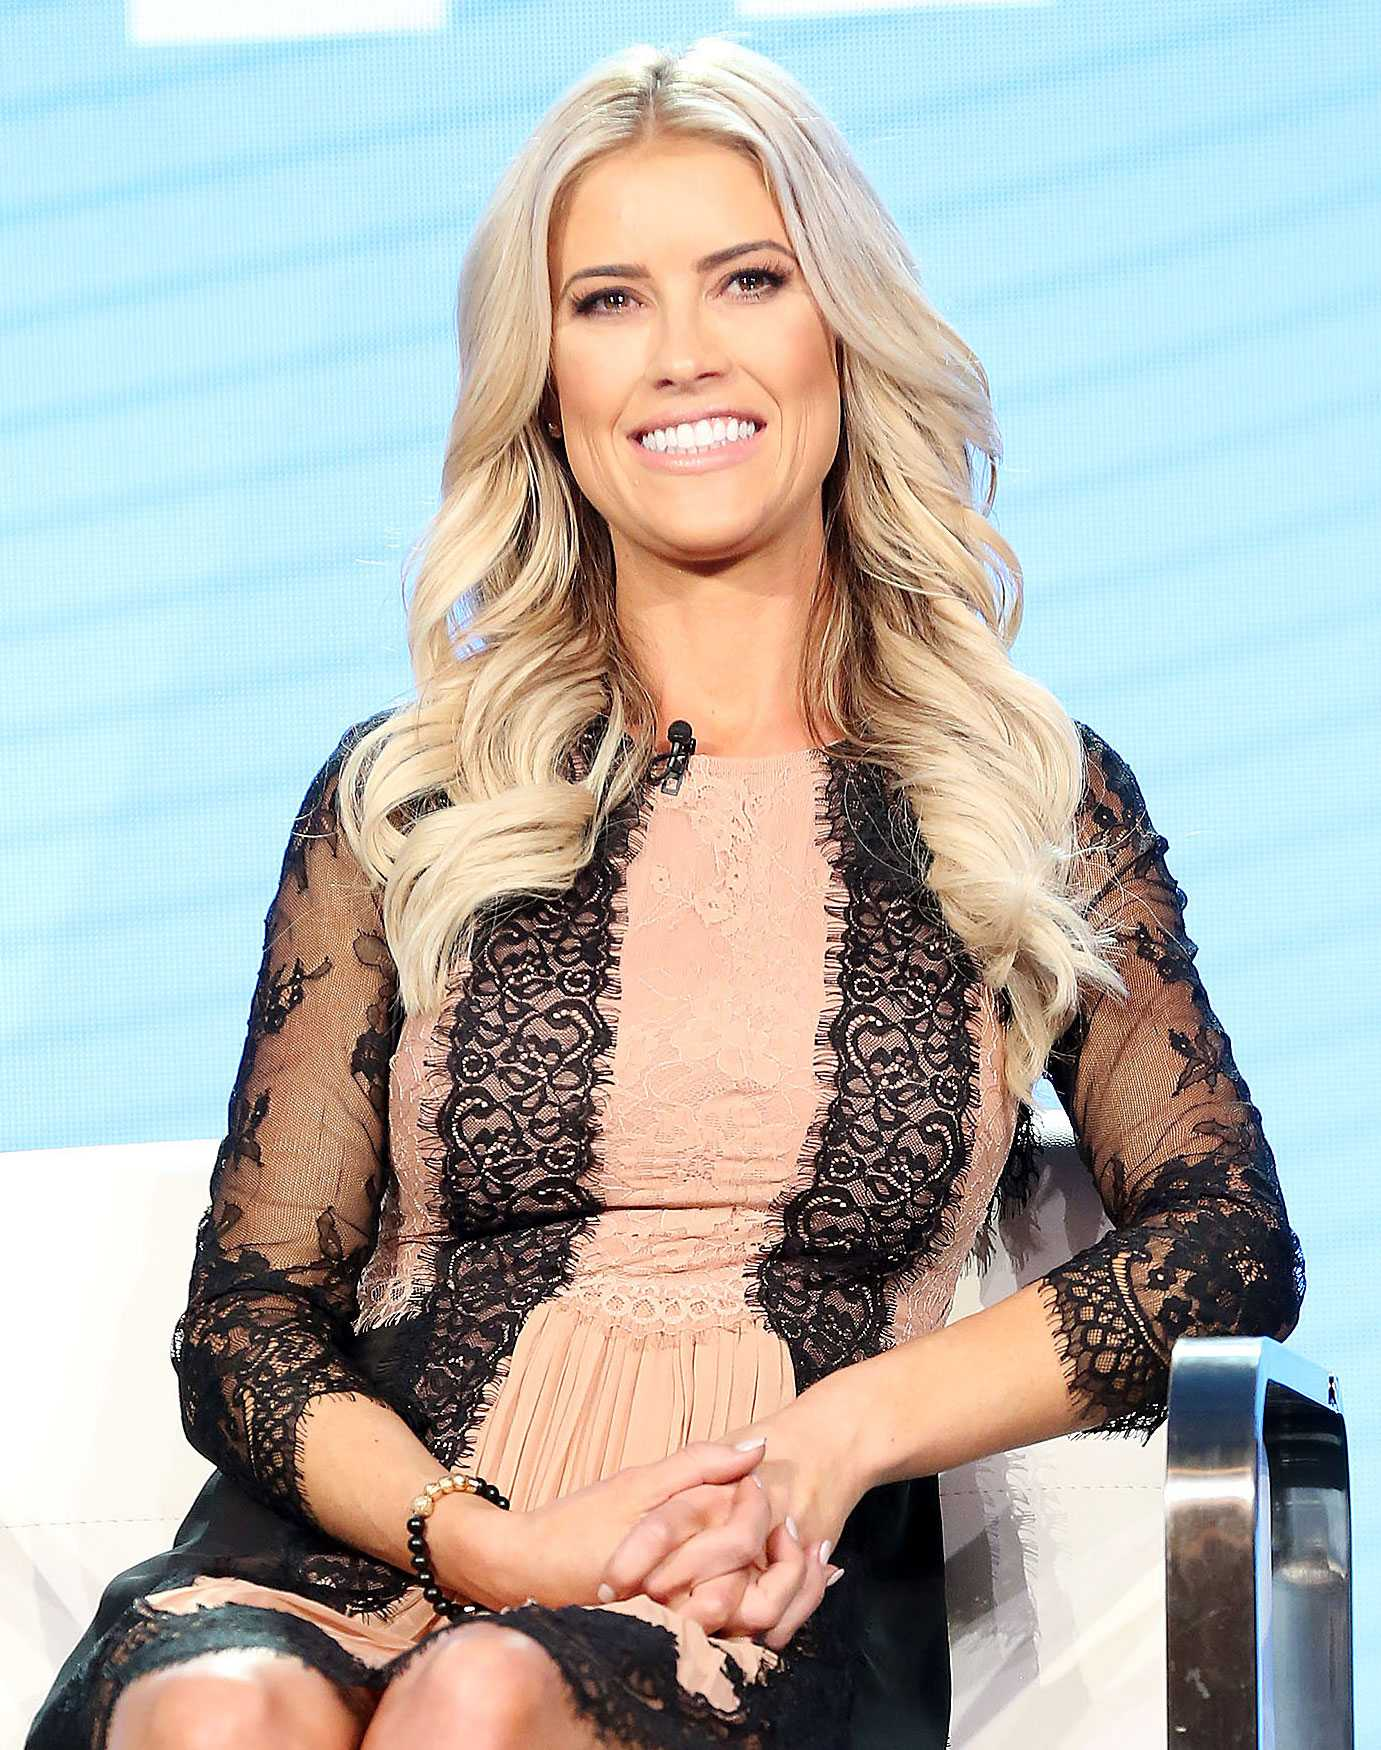 Christina Anstead hot pictures